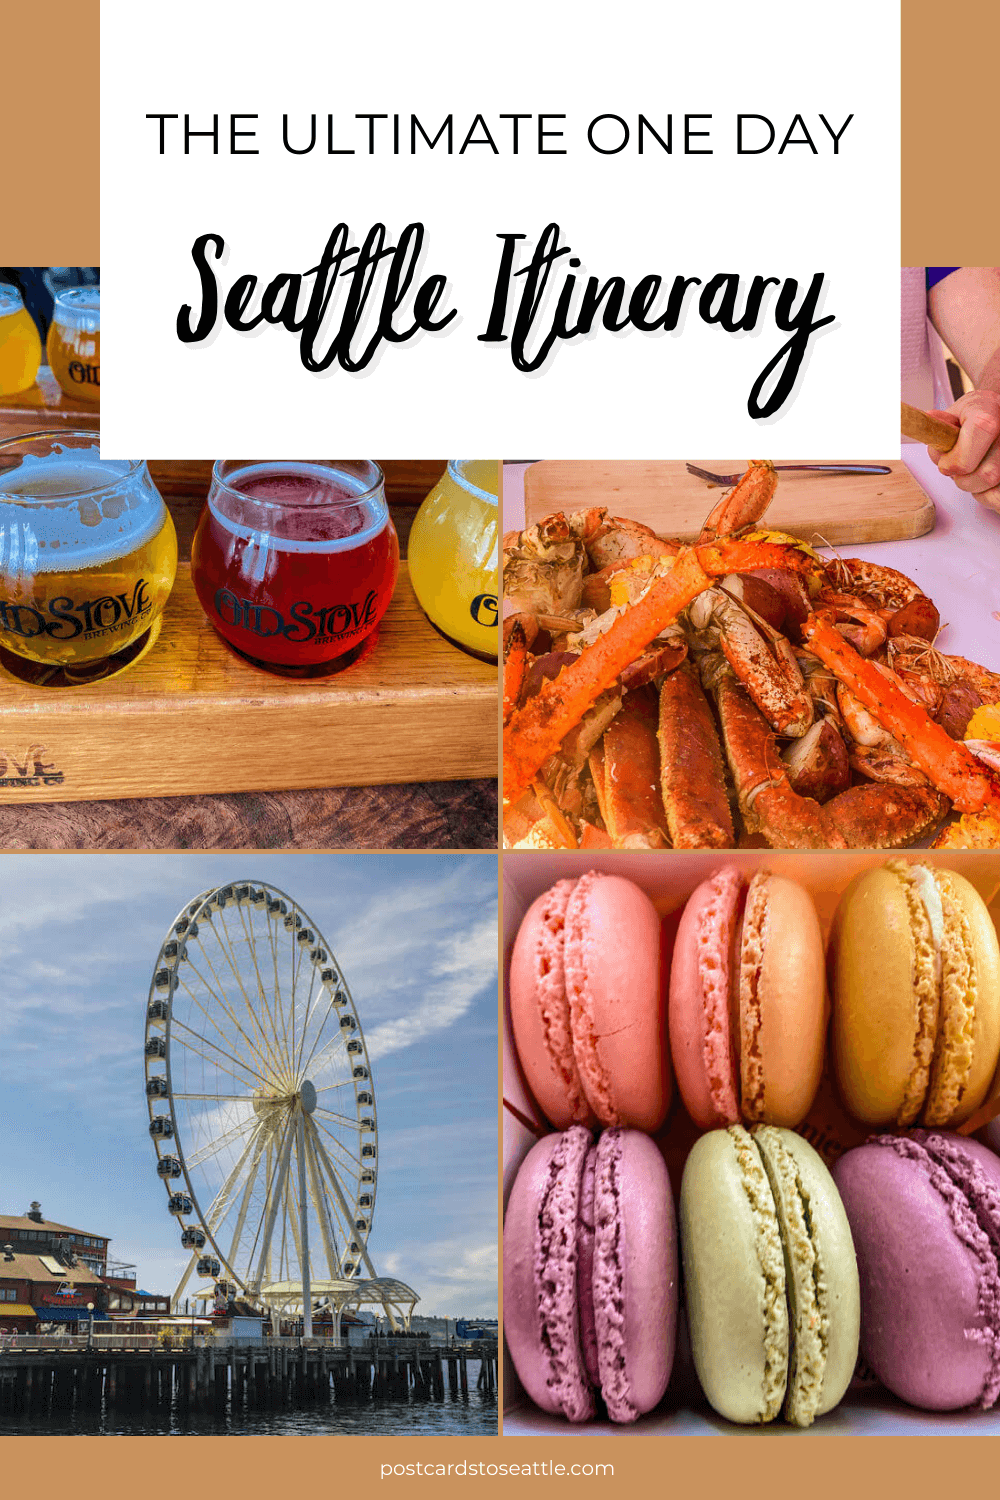 One Day in Seattle - What to See and What to Skip